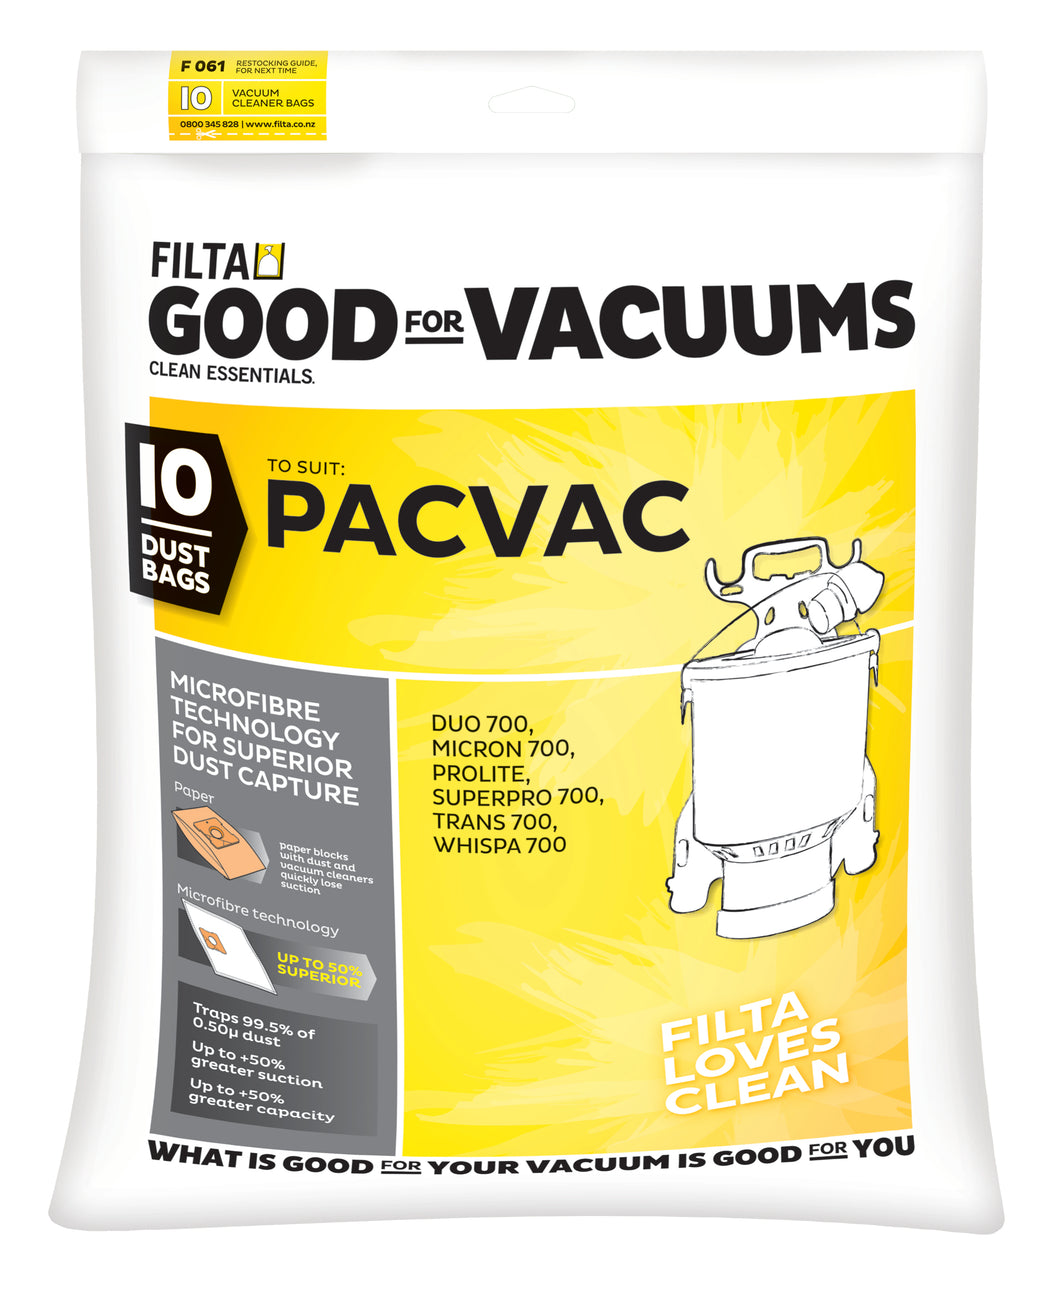 FILTA PACVAC MICROFIBRE VACUUM CLEANER BAGS 10 Pack - Sold by Single Unit in multiples of 1 Single Unit (F061/C061)